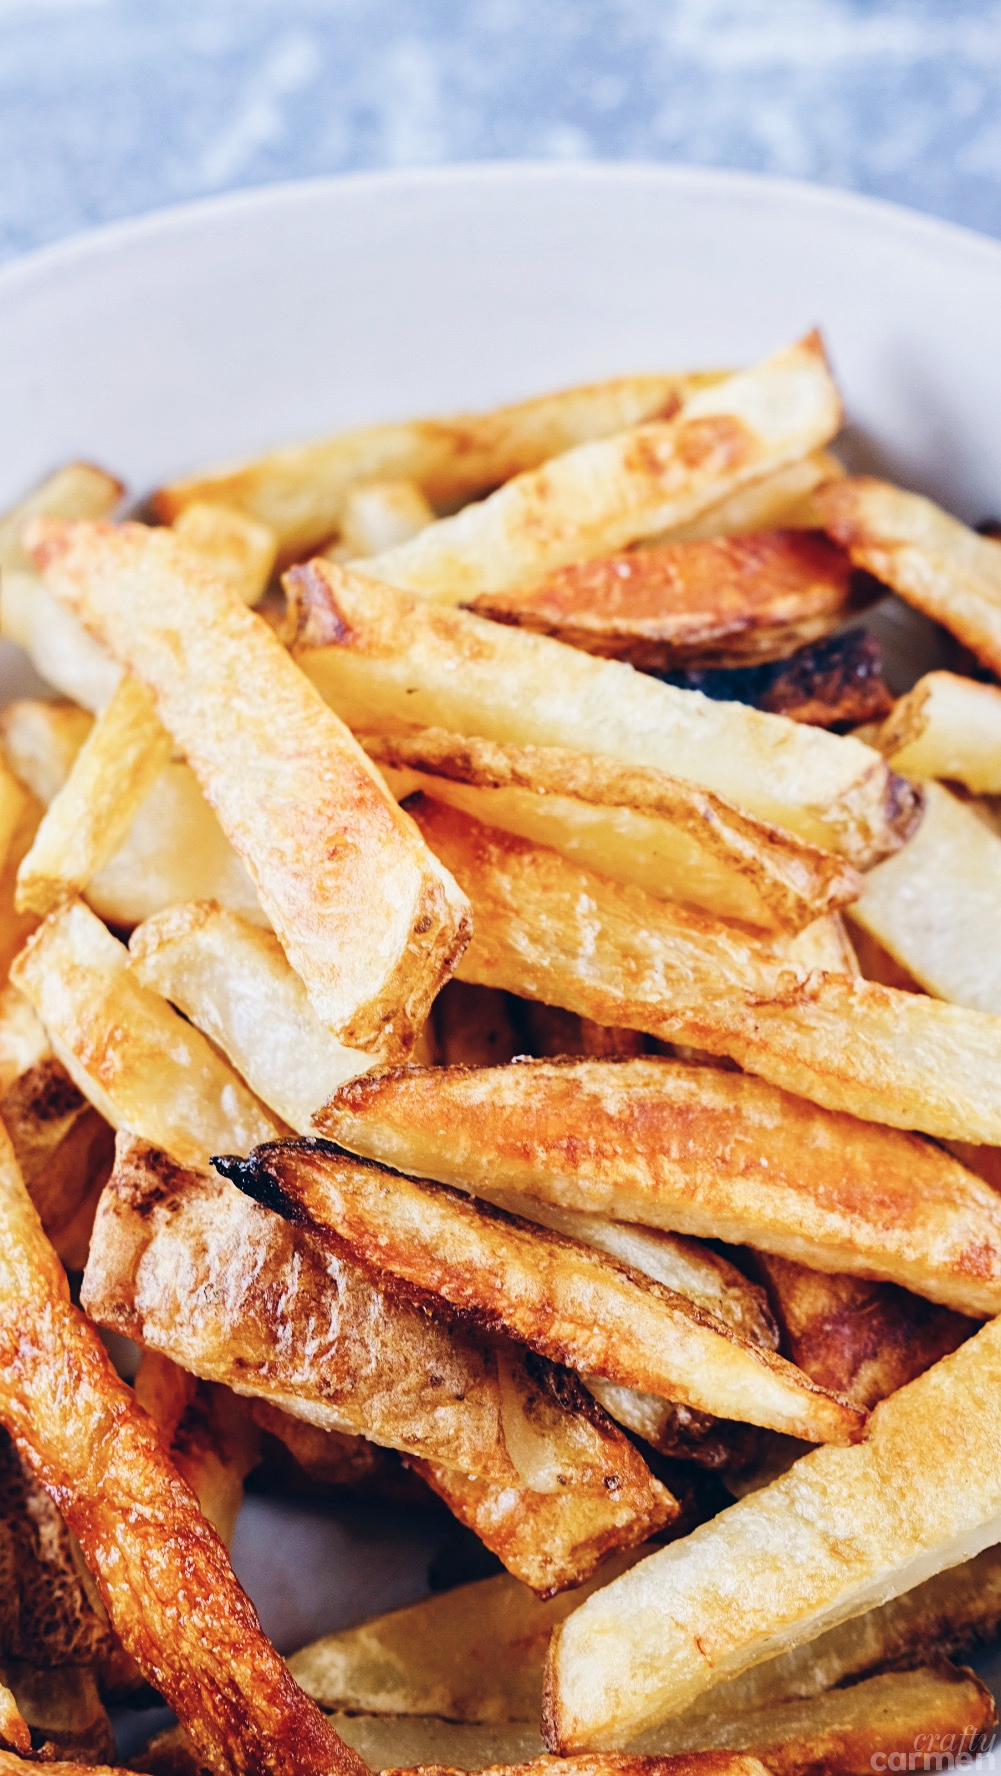 SALT-&-VINEGARBAKED FRIES -